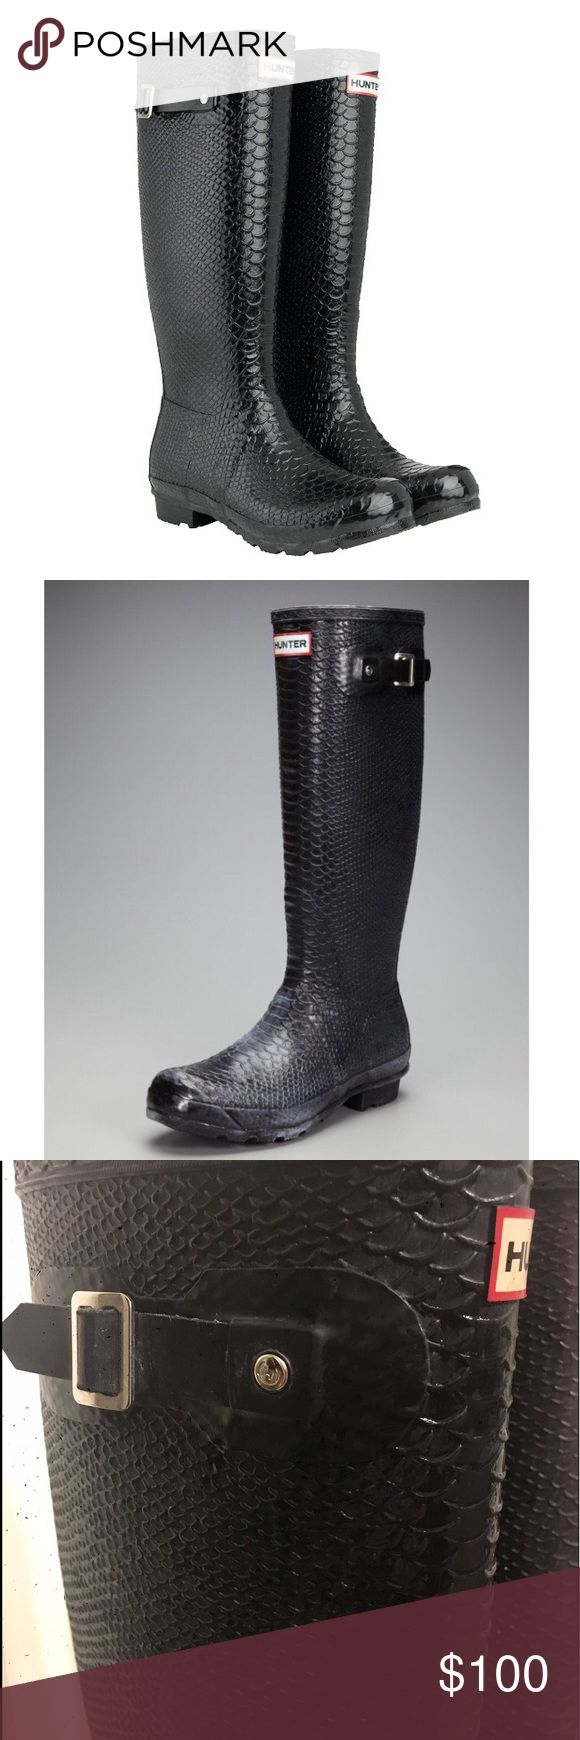 17 best ideas about Black Hunter Boots on Pinterest | Fall fashion ...